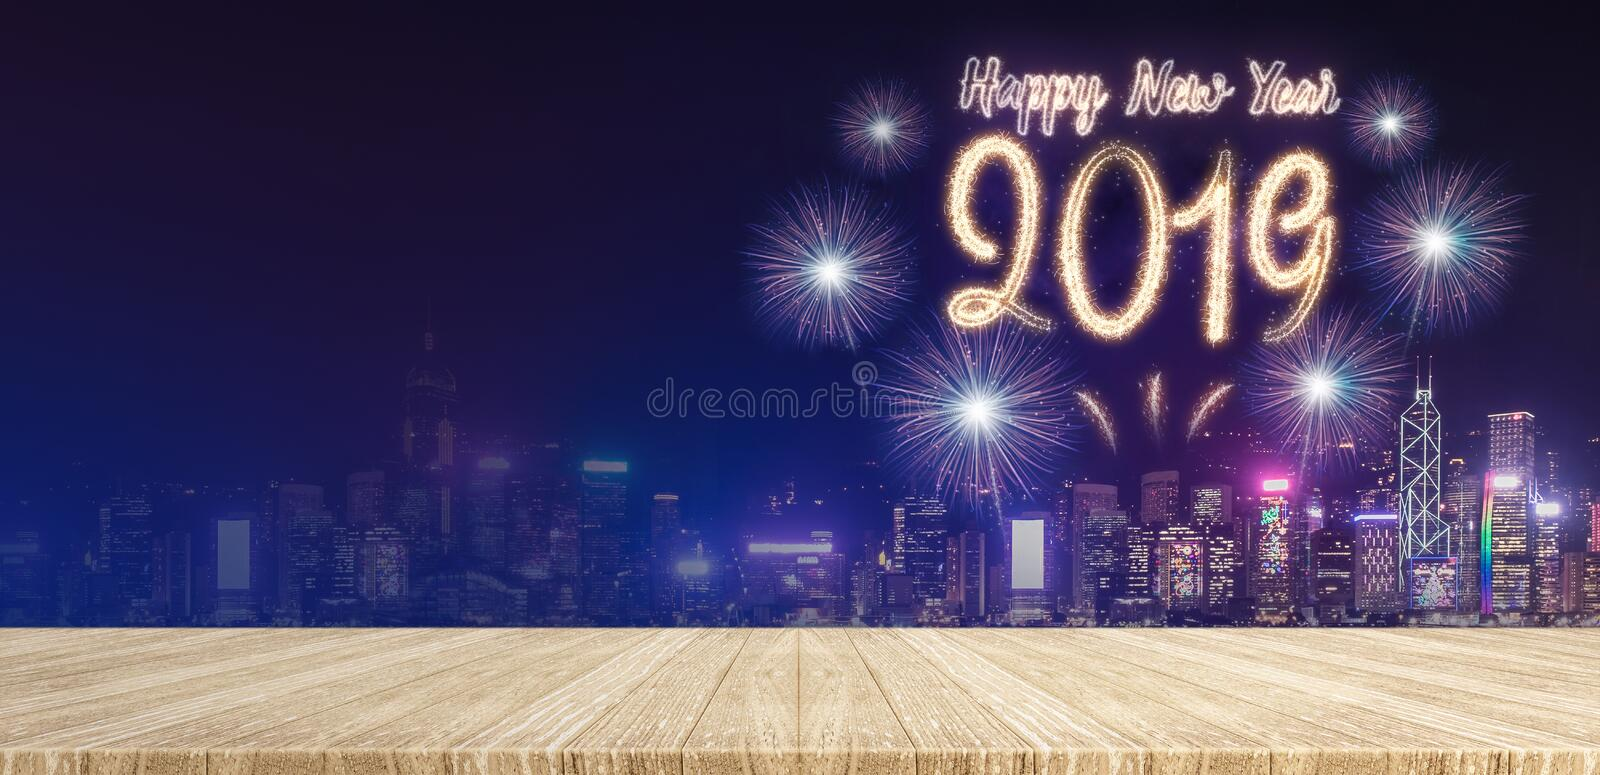 Happy new year 2019 fireworks over cityscape at night with empty royalty free stock photo